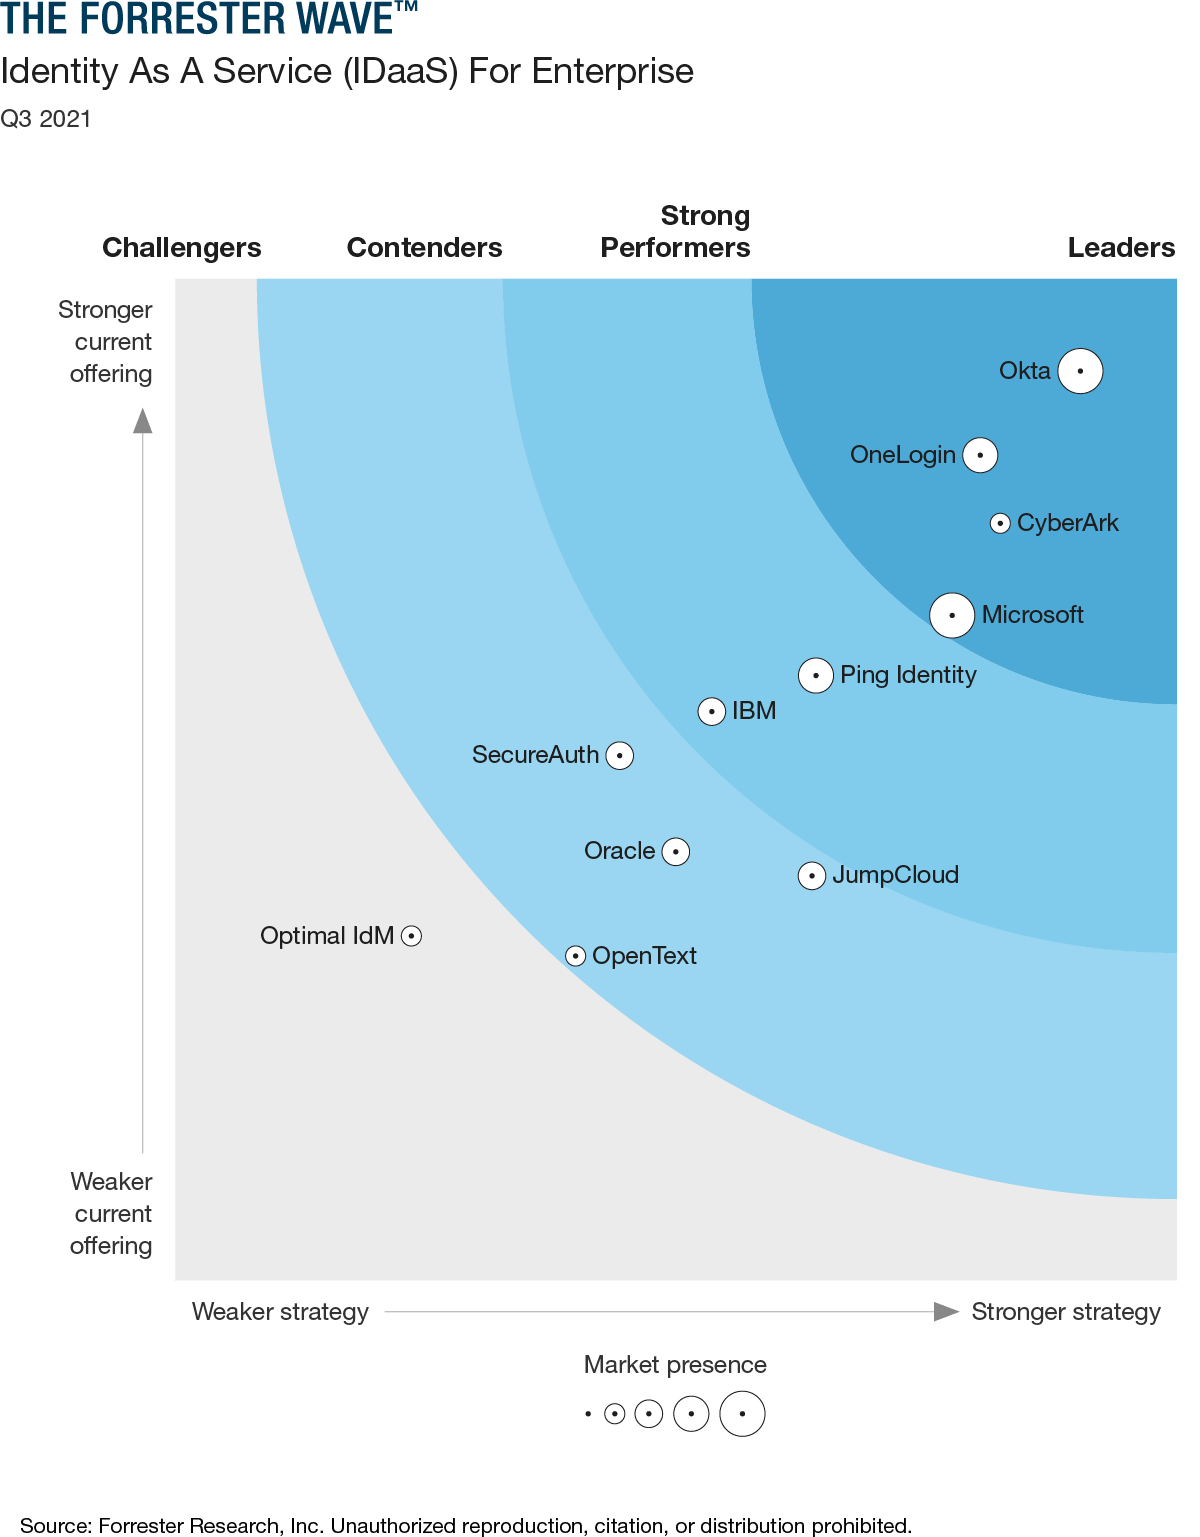 The Forrester Wave (TM): Identity as a Service For Enterprise, Q3 2021